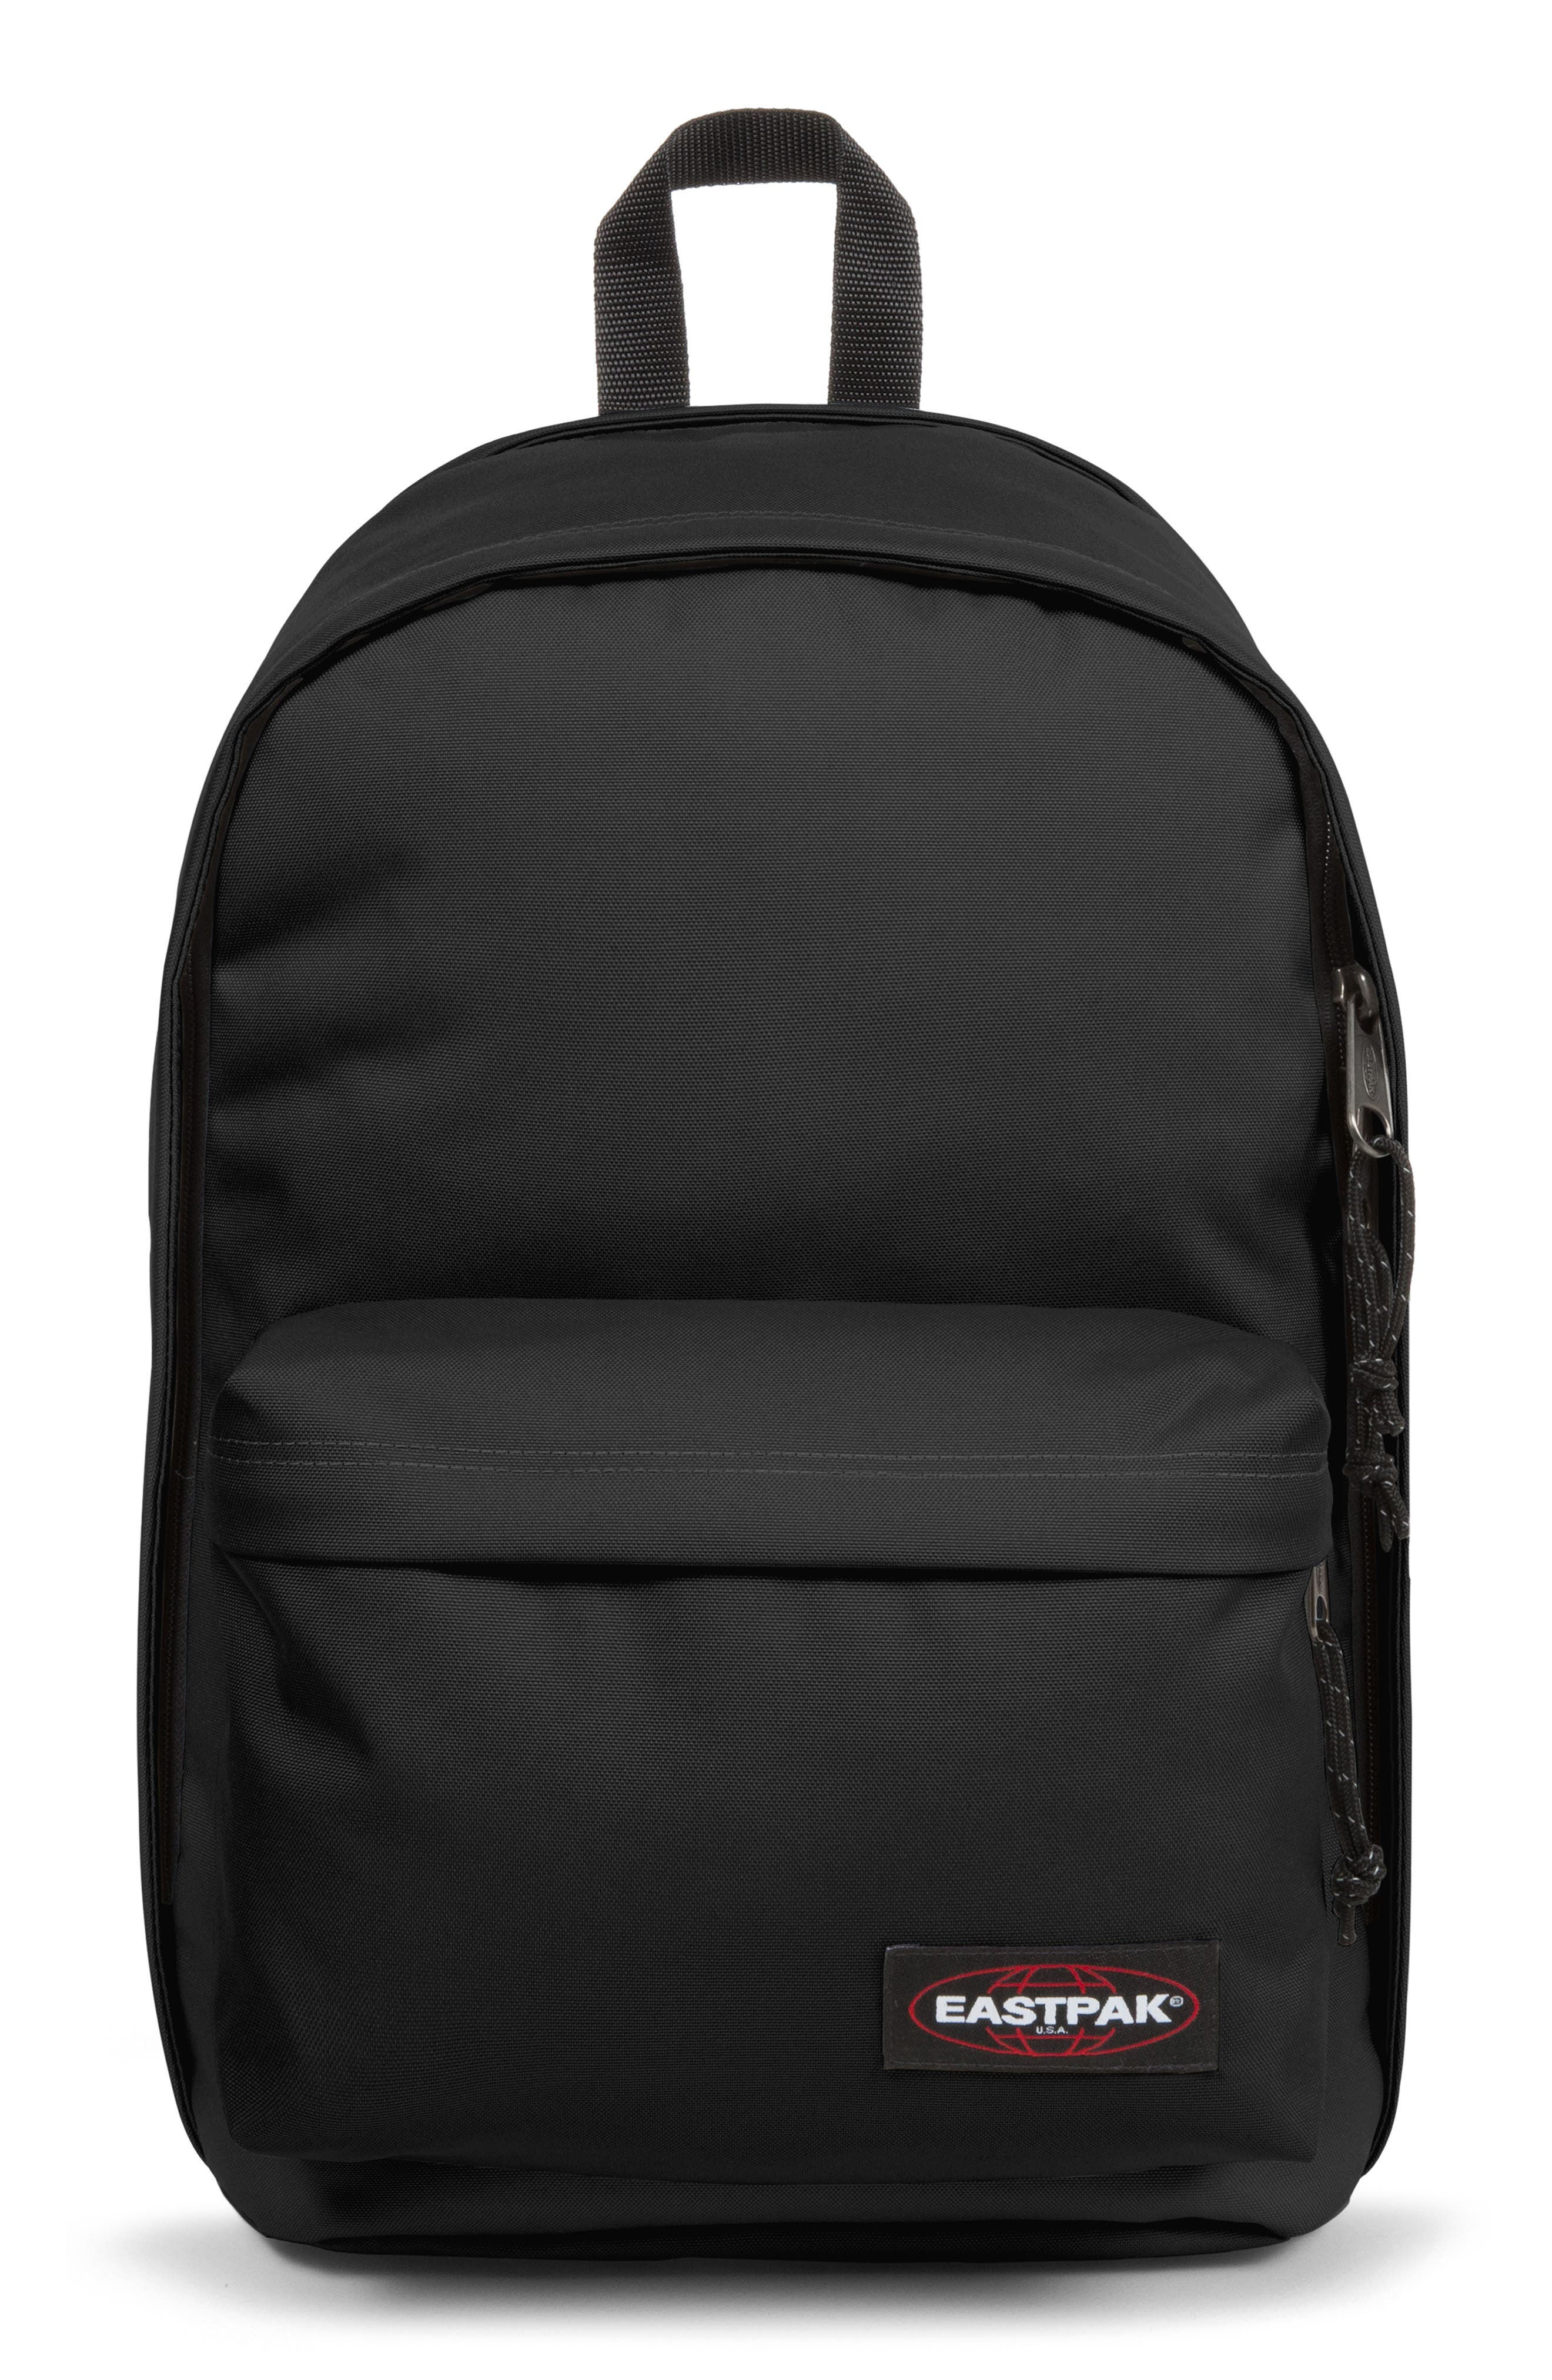 Back to Work Backpack,                             Main thumbnail 1, color,                             BLACK